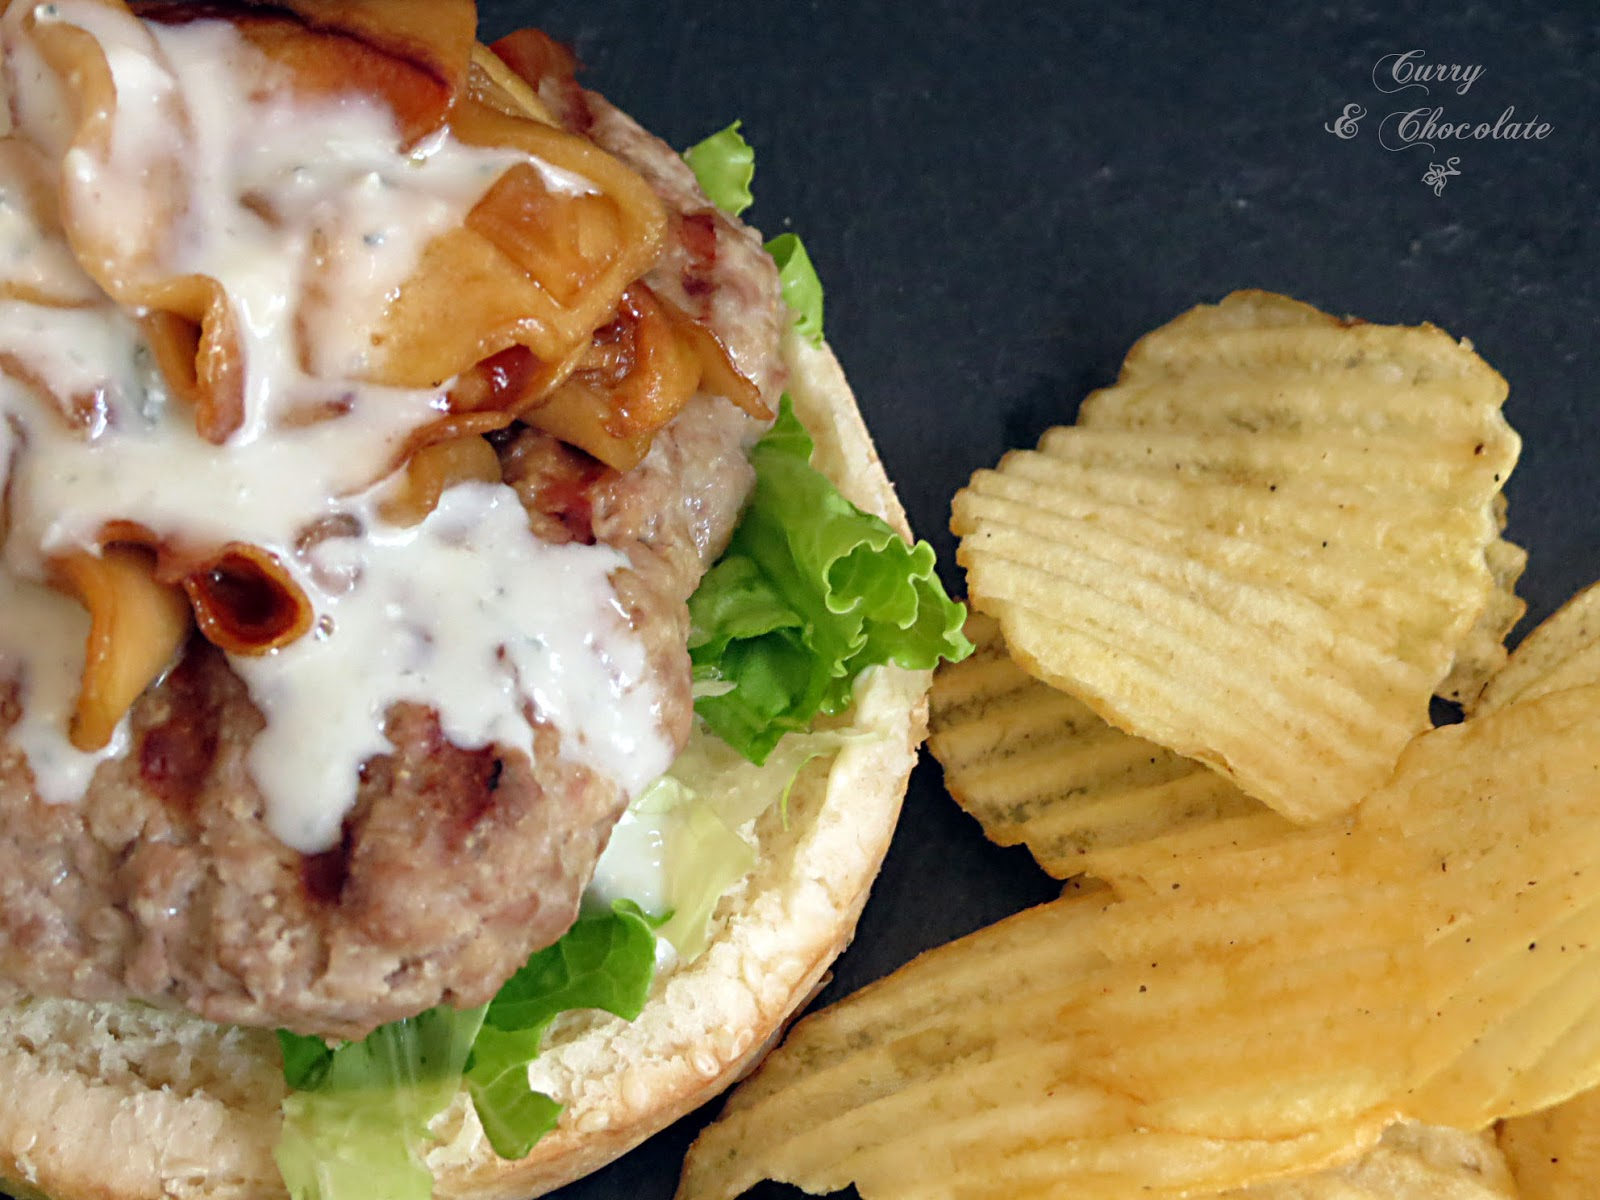 Beef burgers with caramelized apple slices and gorgonzola sauce